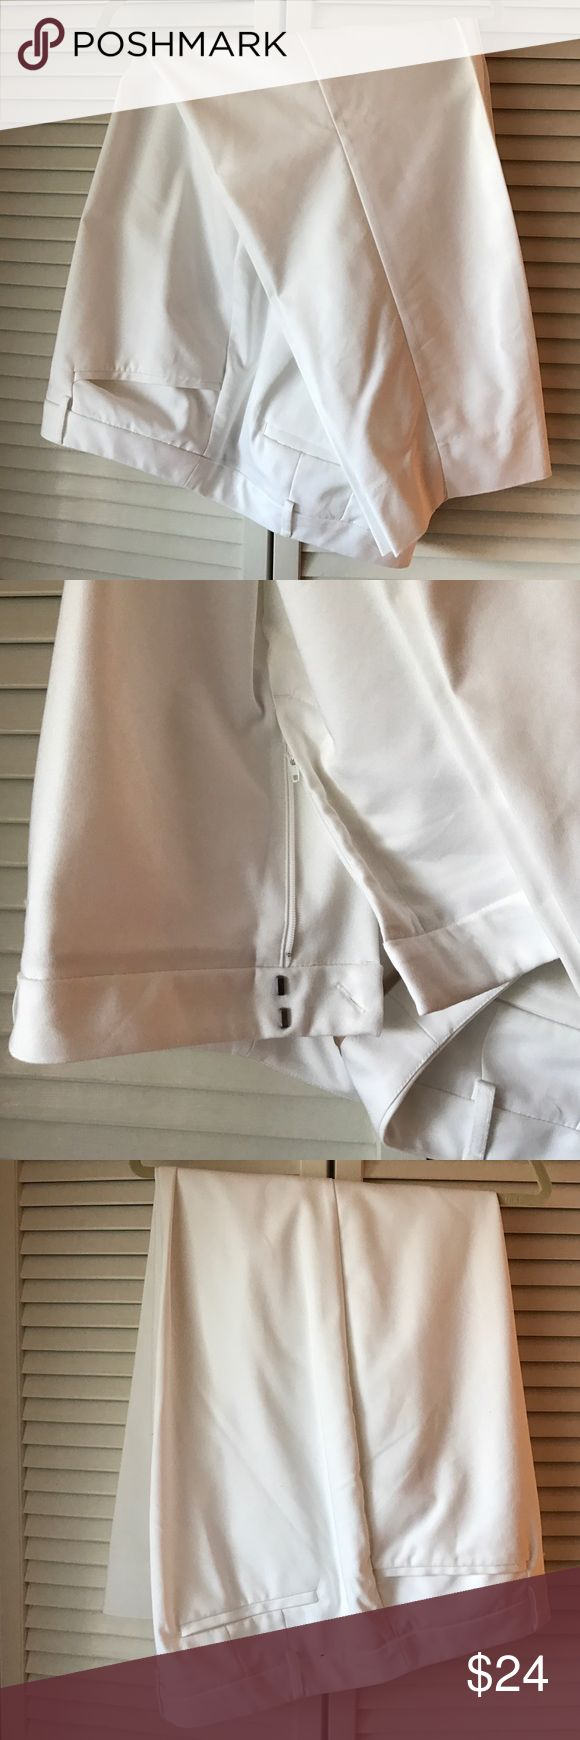 Full length white slacks. Full length white slacks.  Size 26. Two front pockets. Two small pockets on the back. Only worn once. From a smoke free home. Lane Bryant Pants Trousers